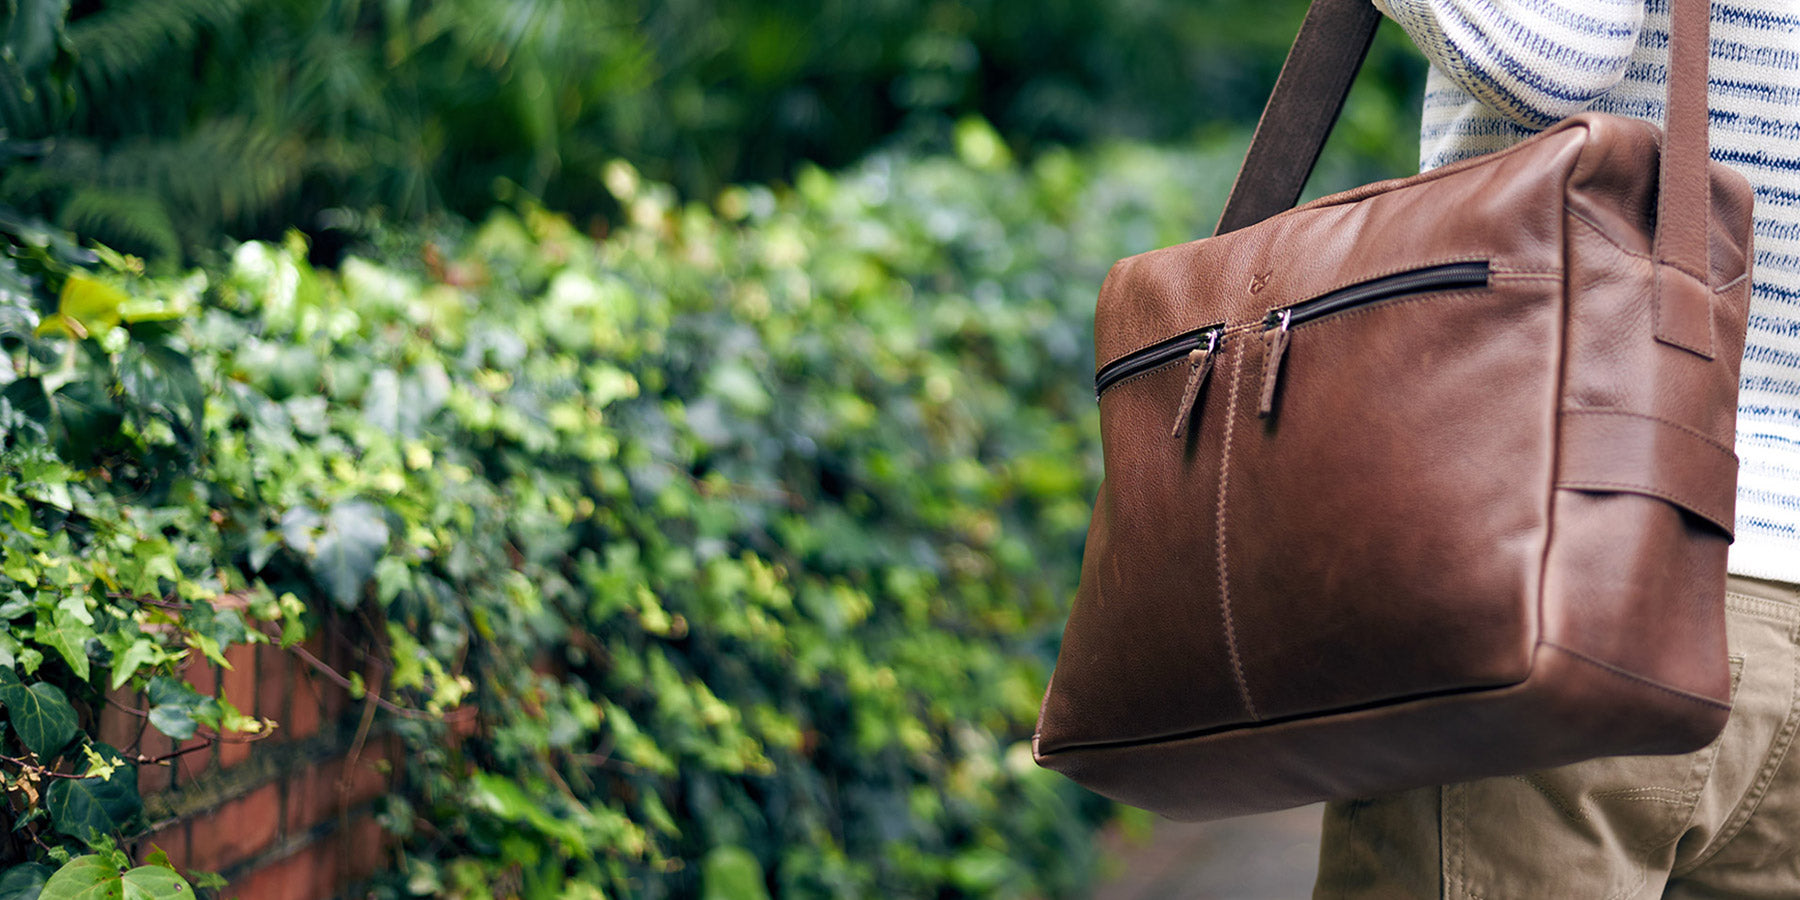 Capra leather bags